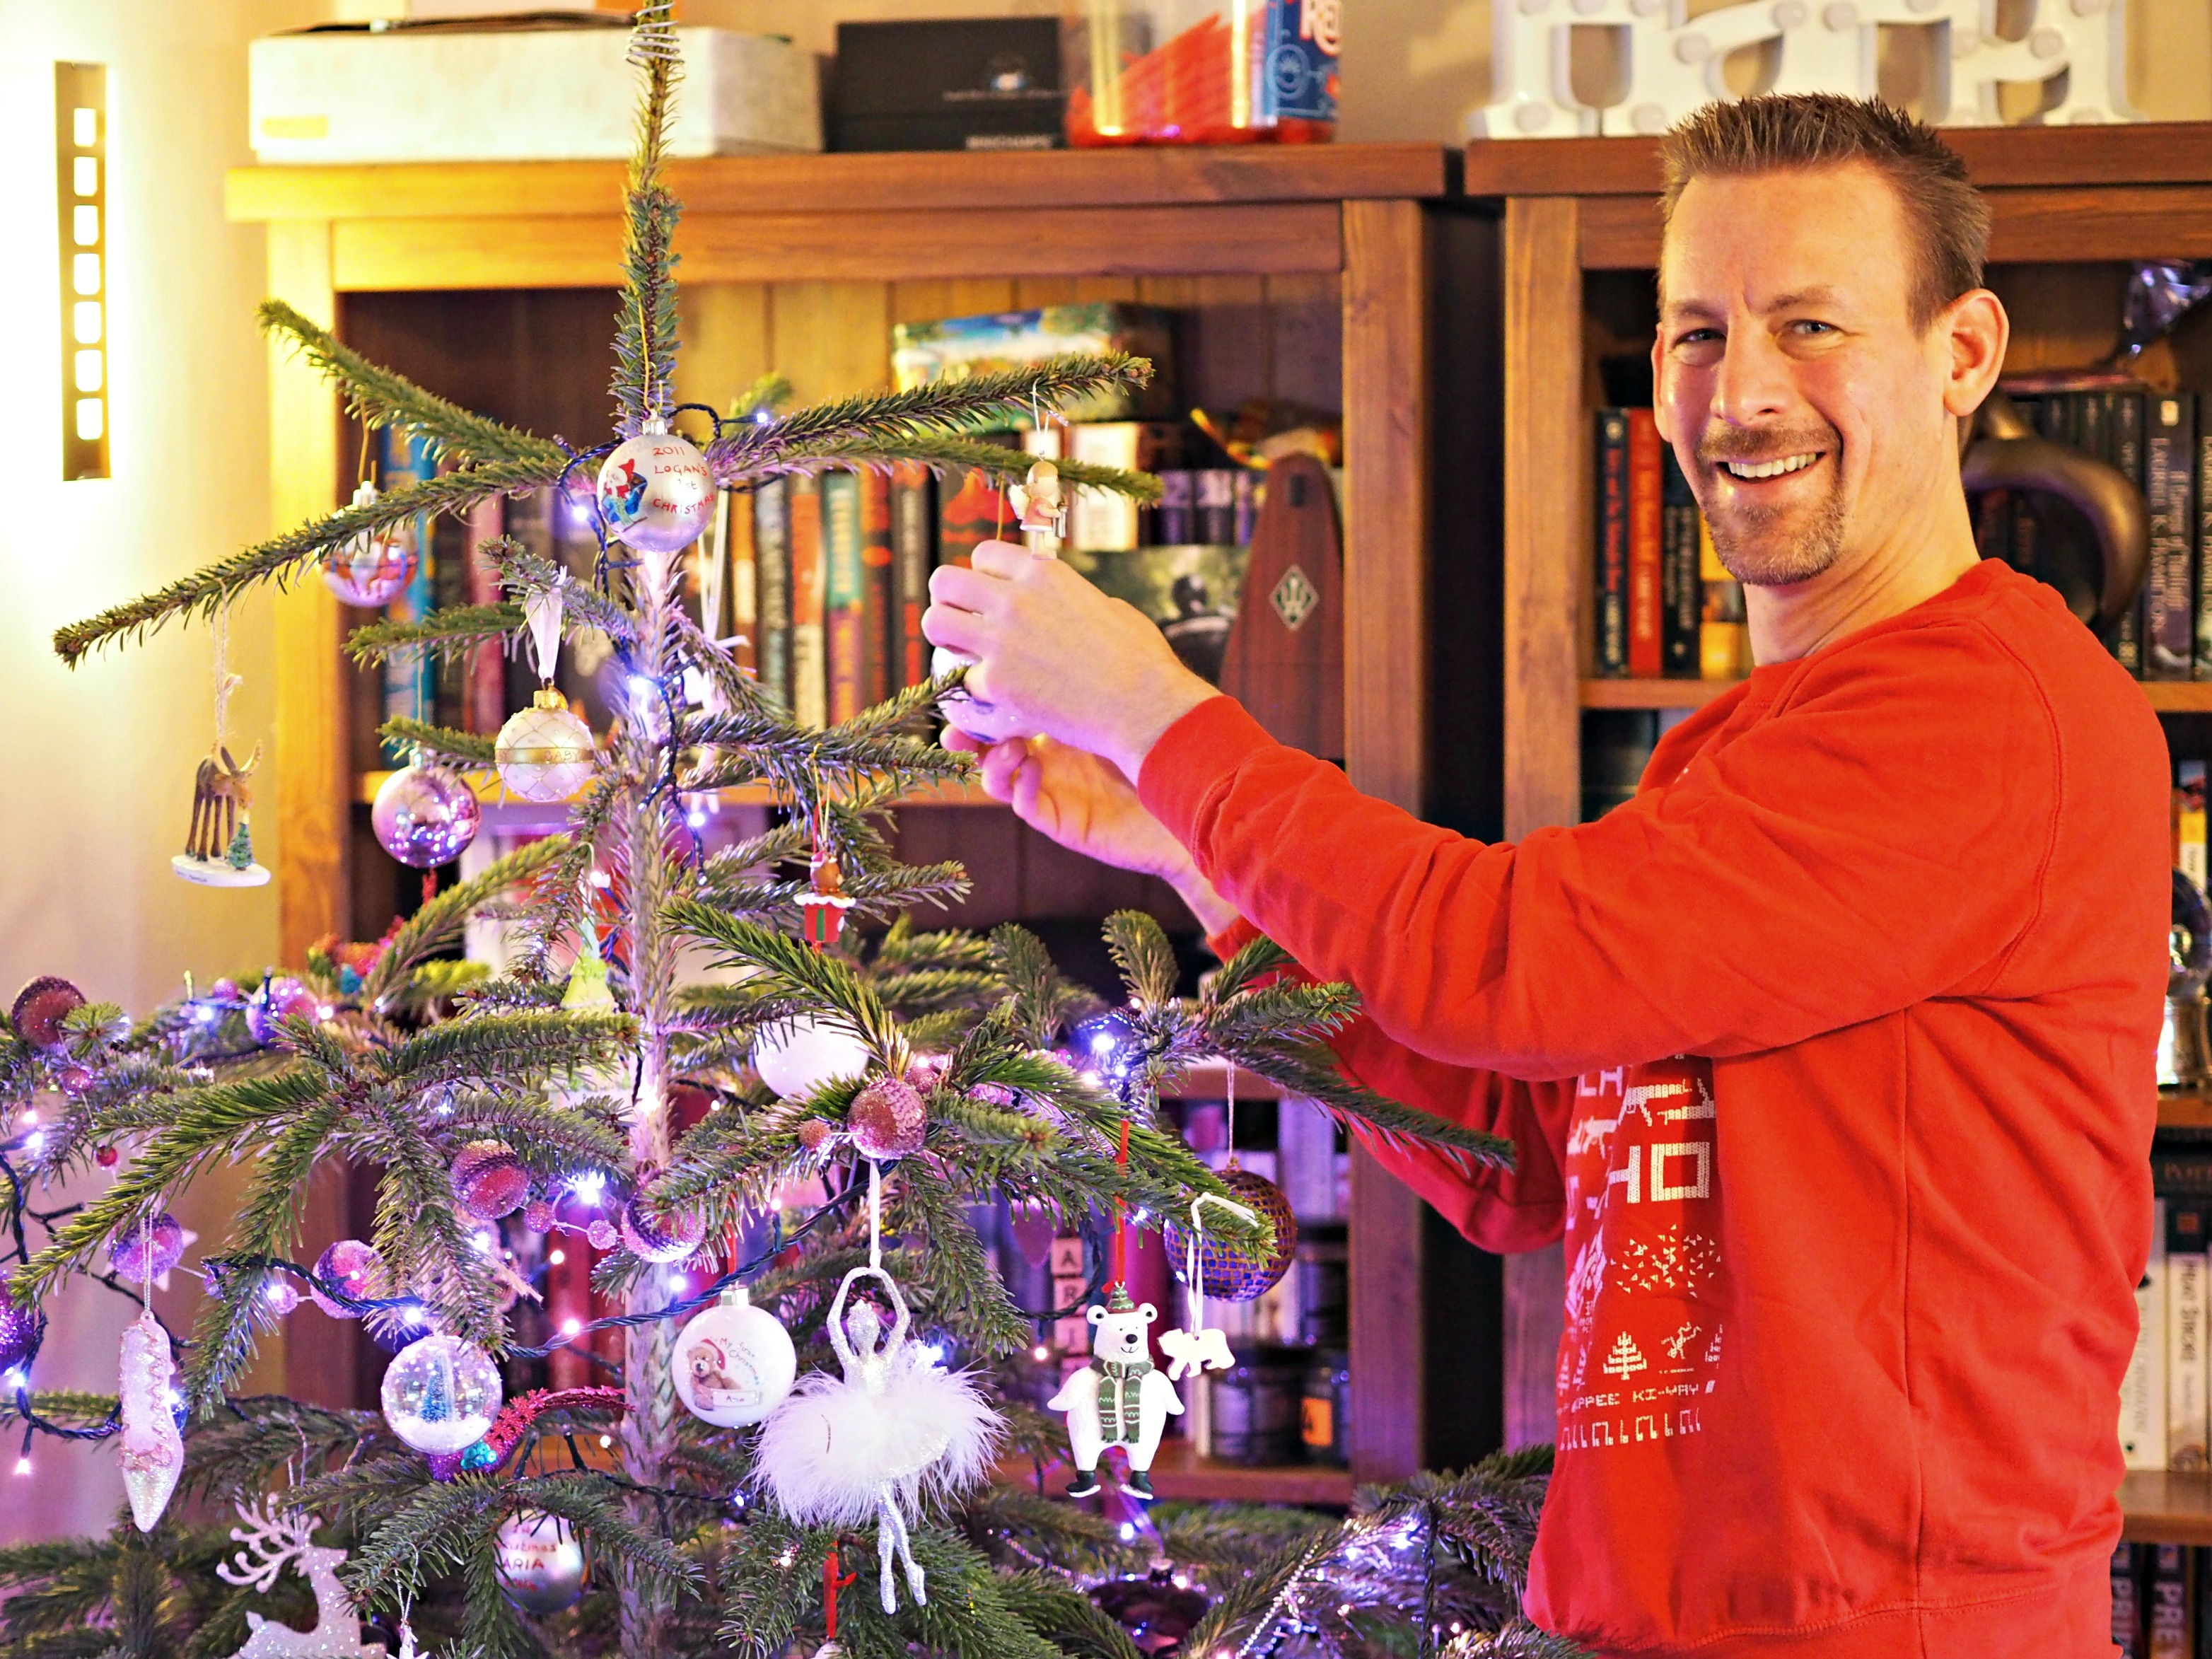 BEN'S ZONE: My Five Favourite Christmas Traditions